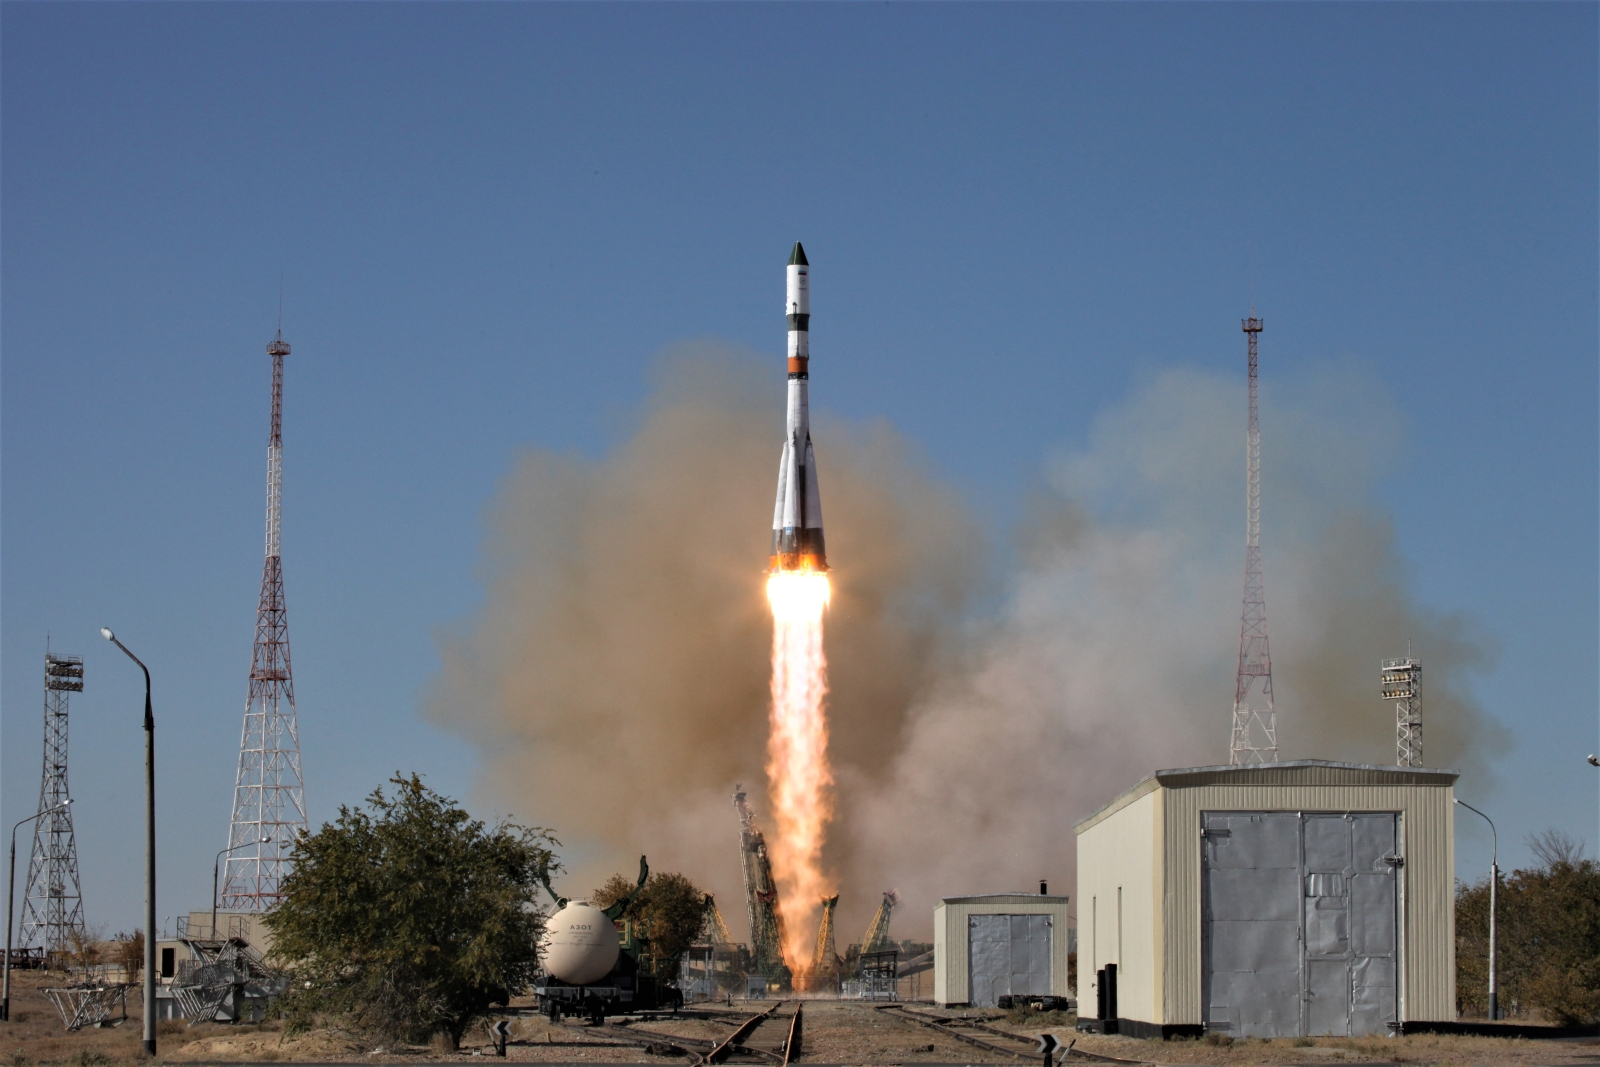 A file photo of a previous Soyuz 2.1a rocket launching a Progress cargo ship. Progress MS-11 launched atop the same type of vehicle on April 4, 2019. Photo Credit: Roscosmos